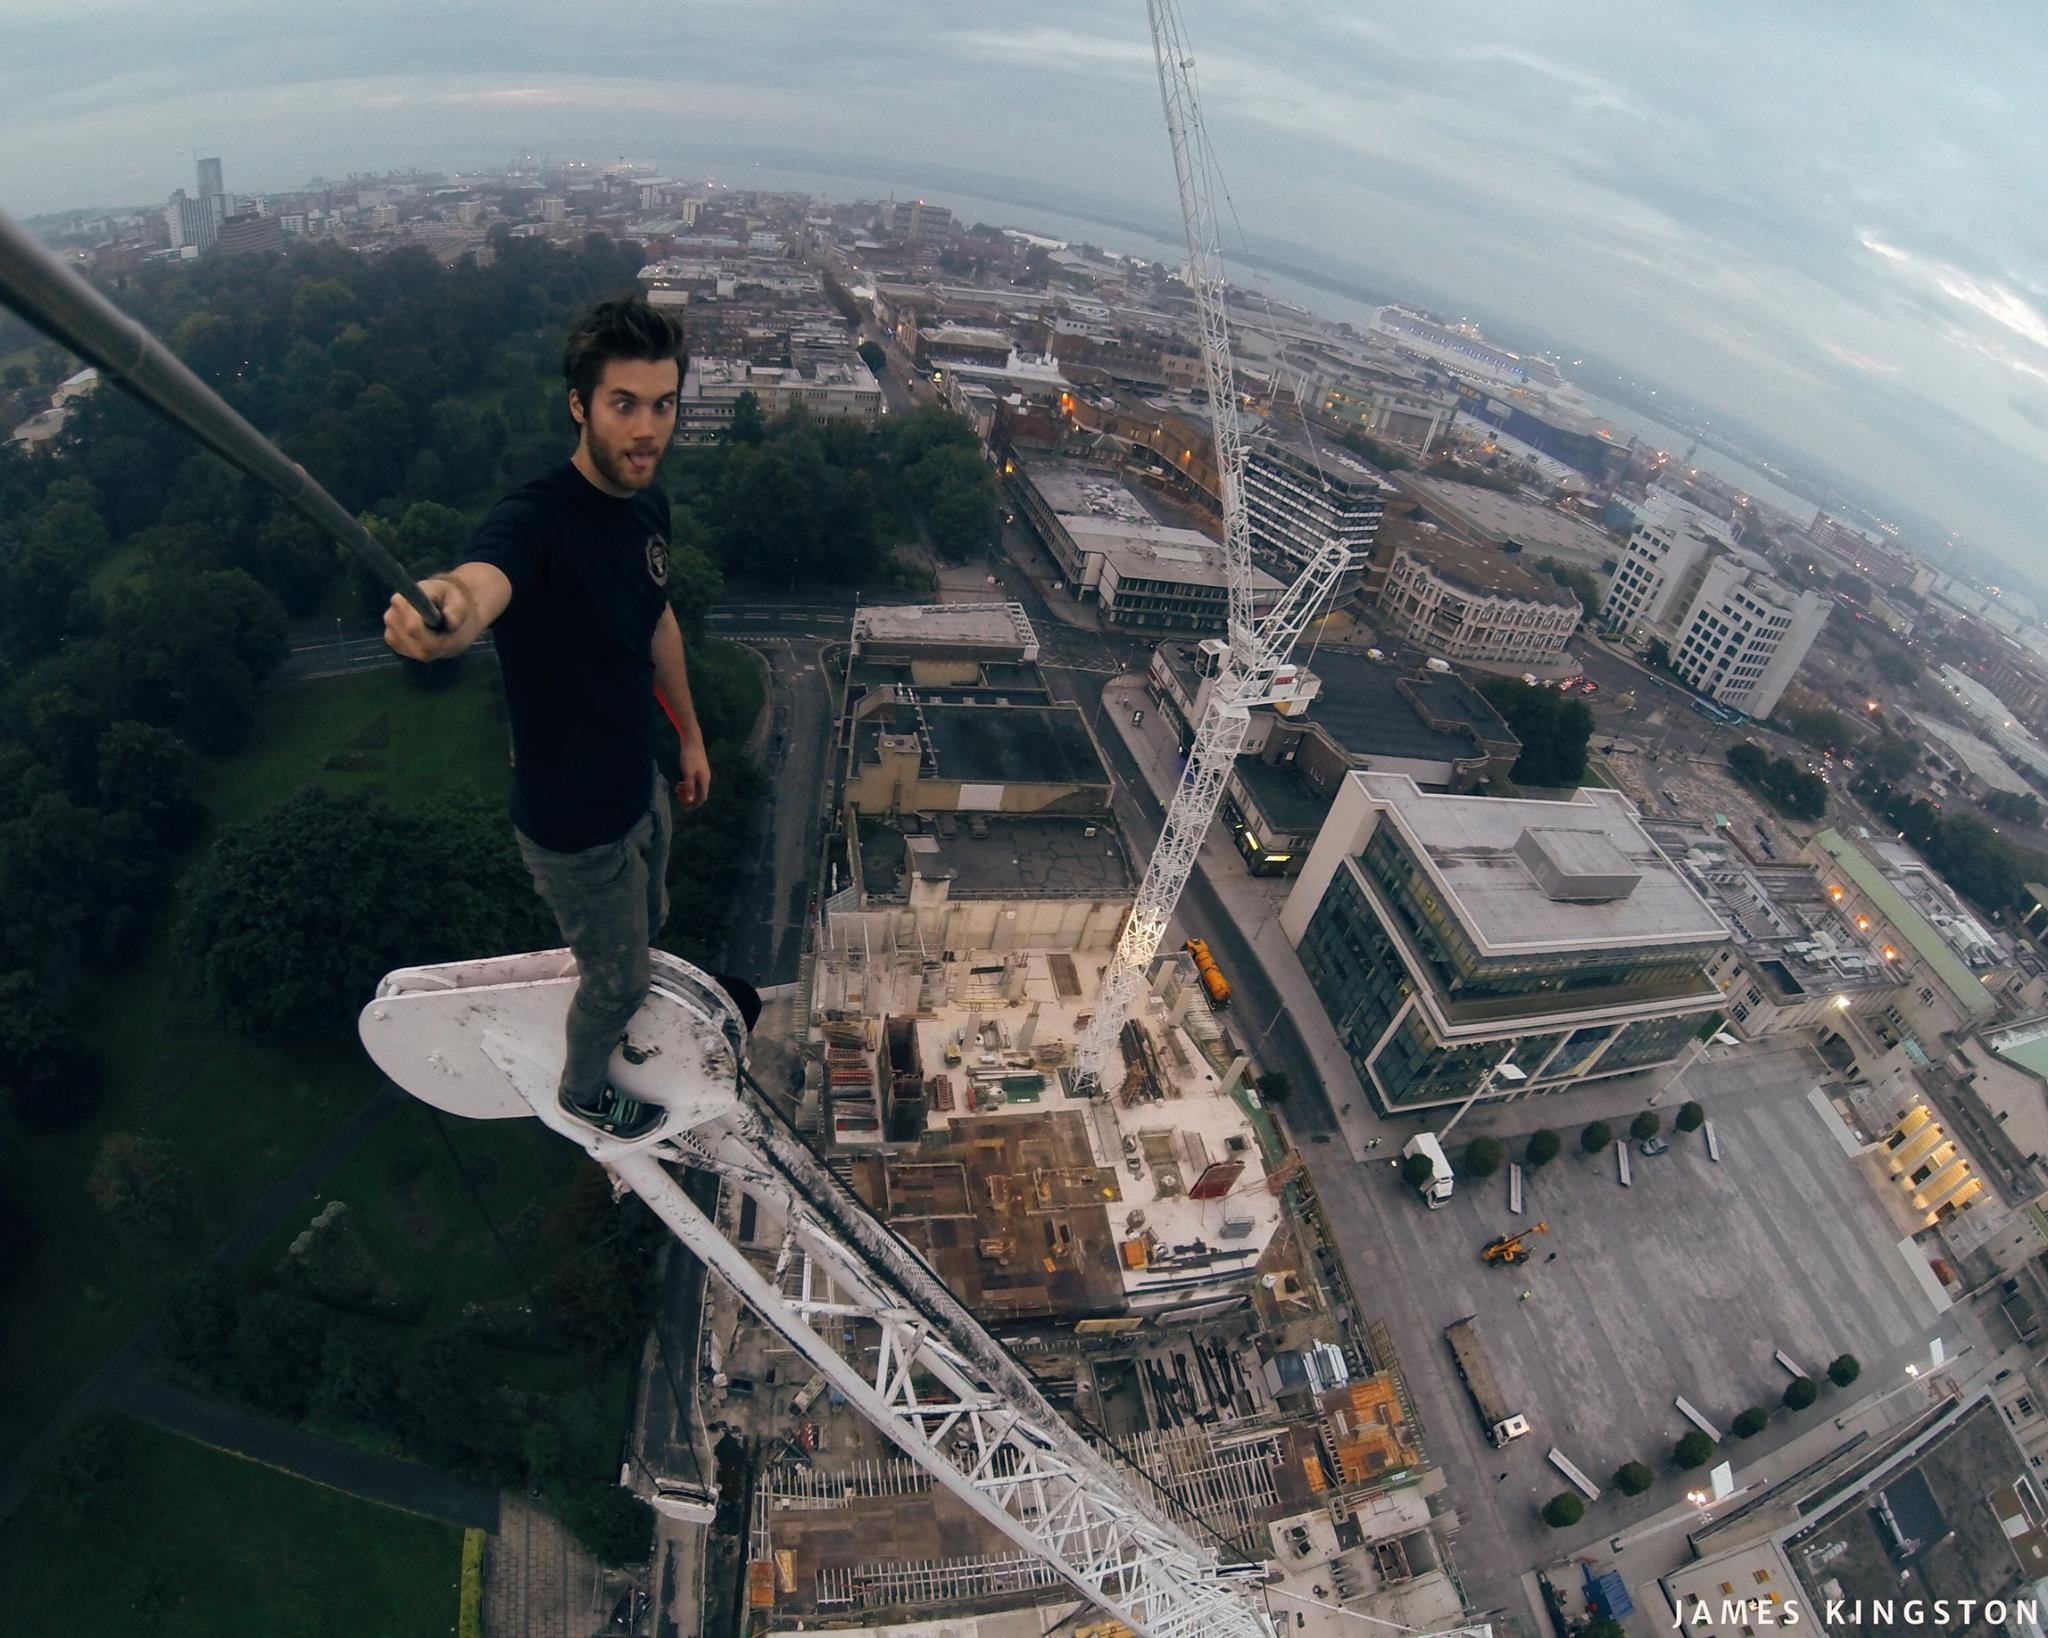 Free Runner James Kingston Released One Of His Craziest Stunts Yet 10714482 695567173871814 1979079358967825195 o